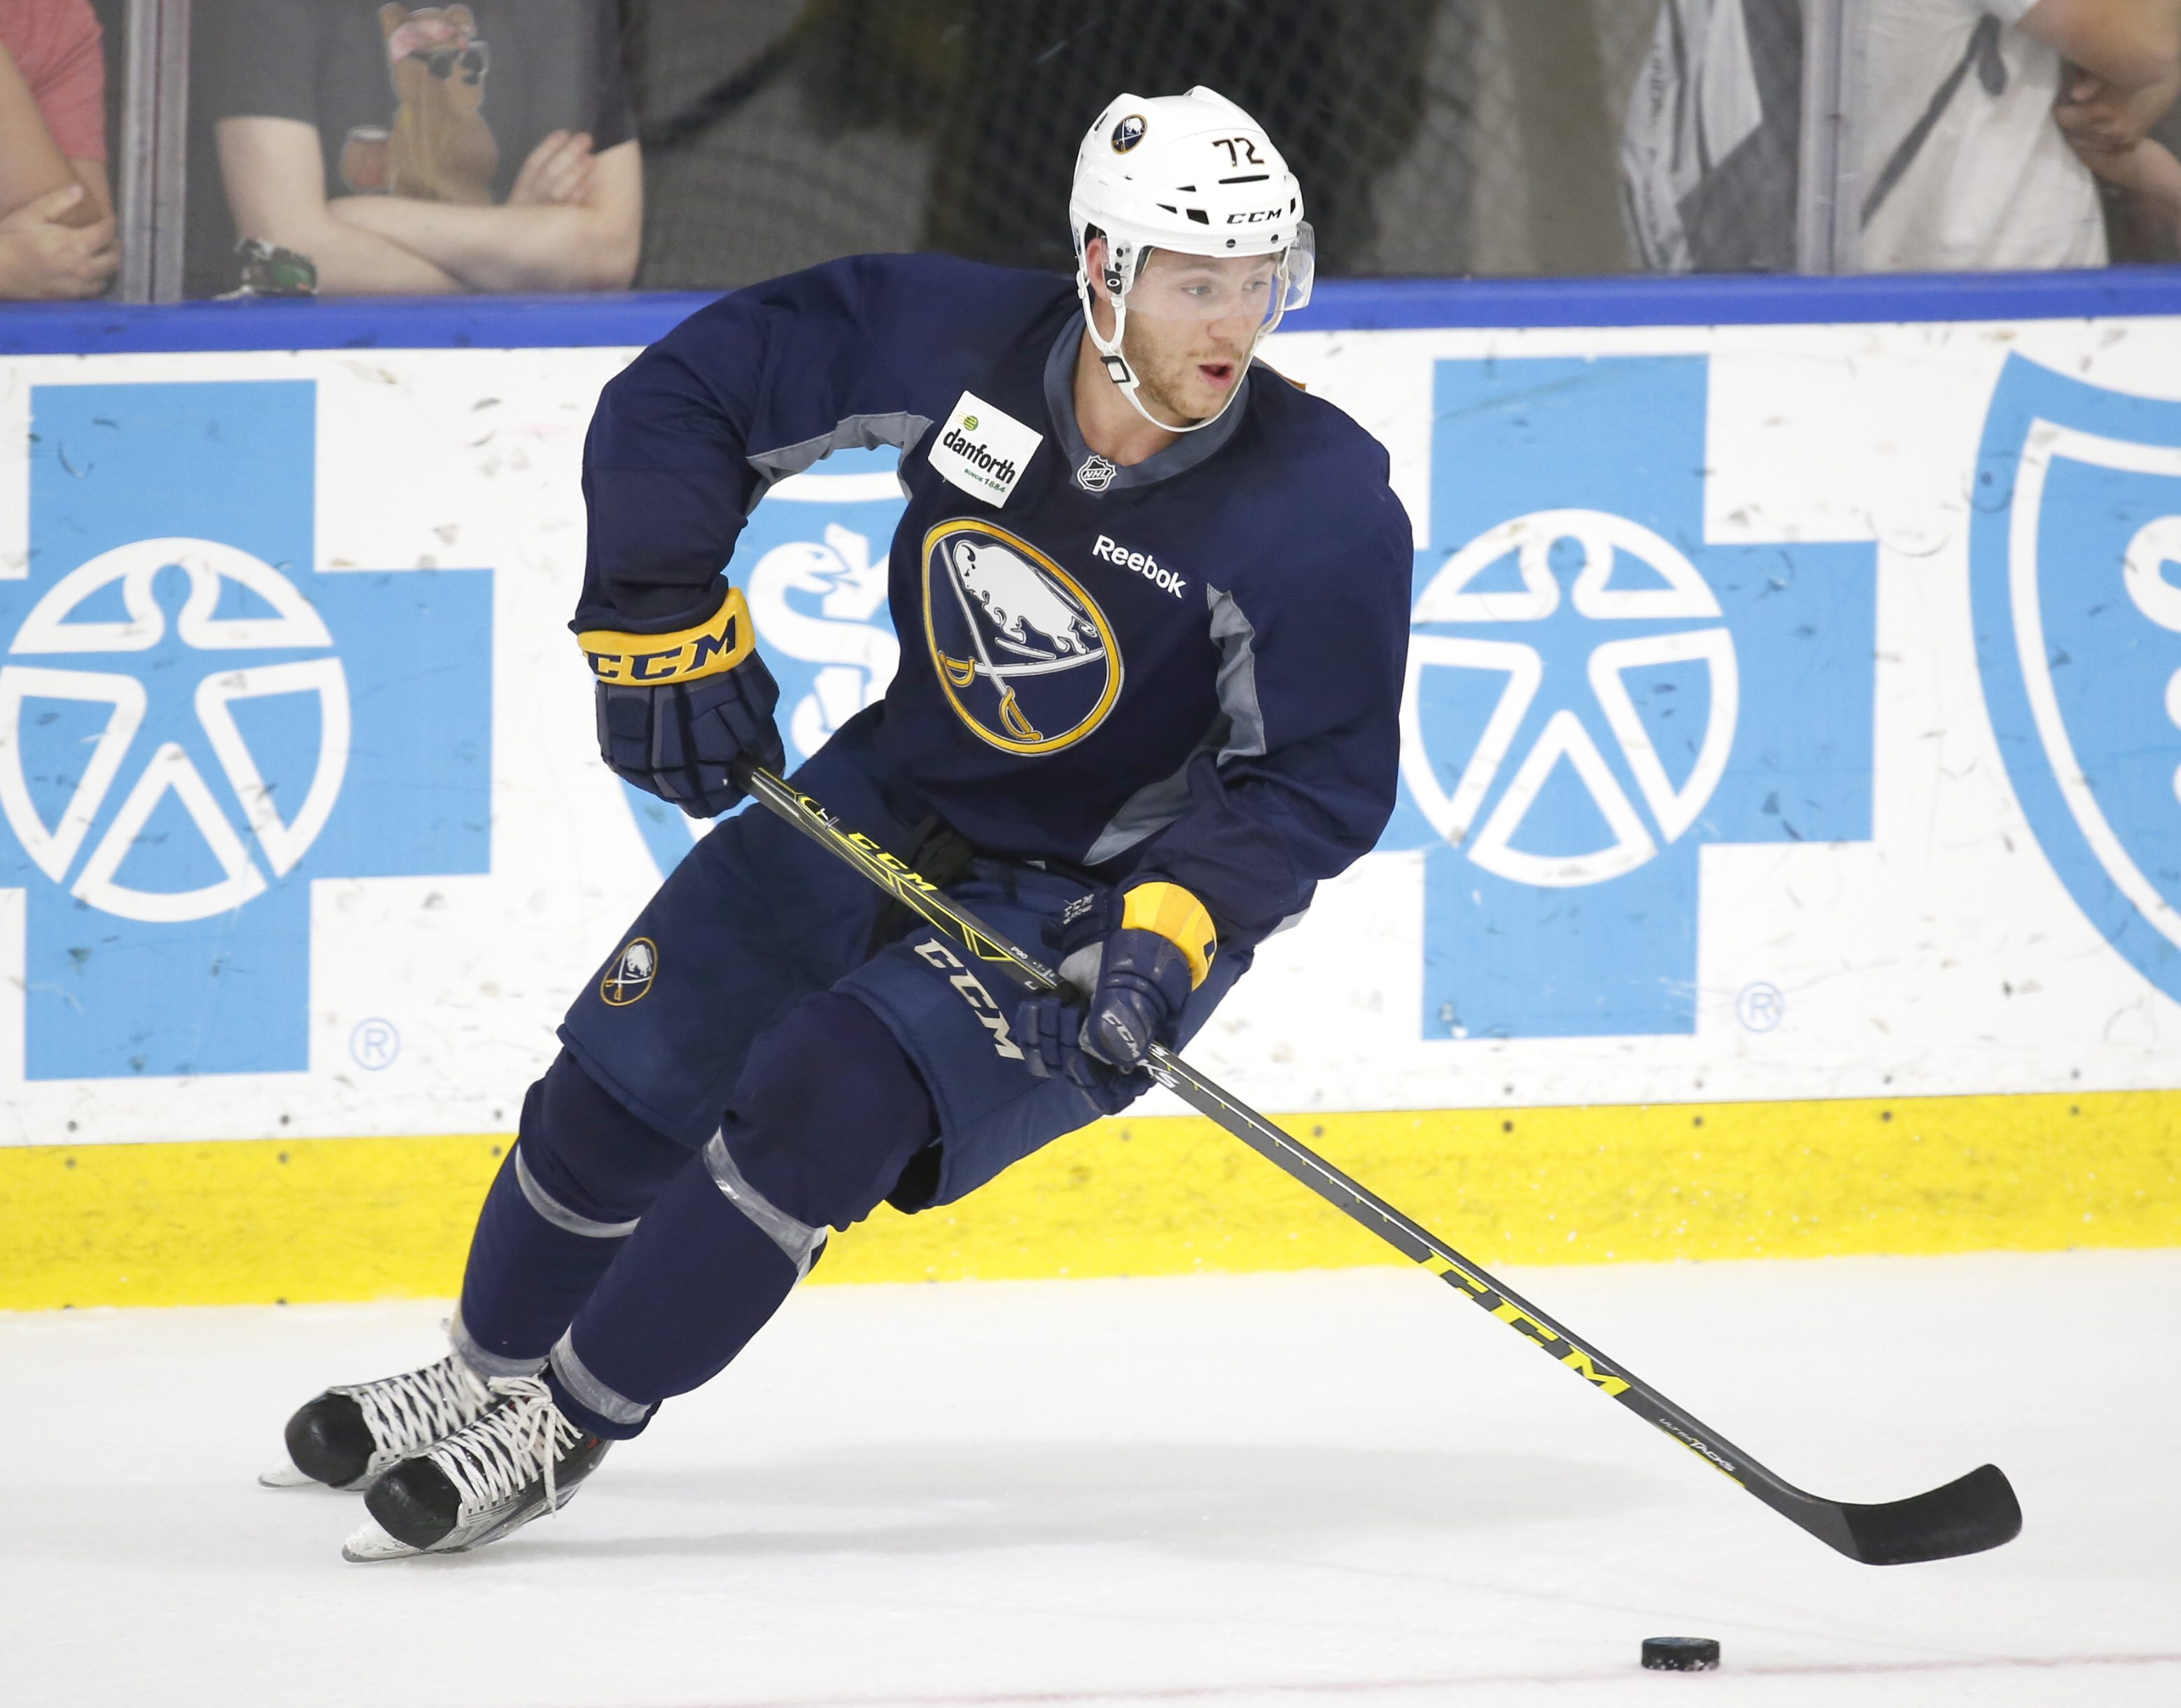 Buffalo Sabres prospect Jean Dupuy works with the puck during the opening day of the Buffalo Sabres' 2016 development camp at HarborCenter. (Harry Scull Jr./Buffalo News)